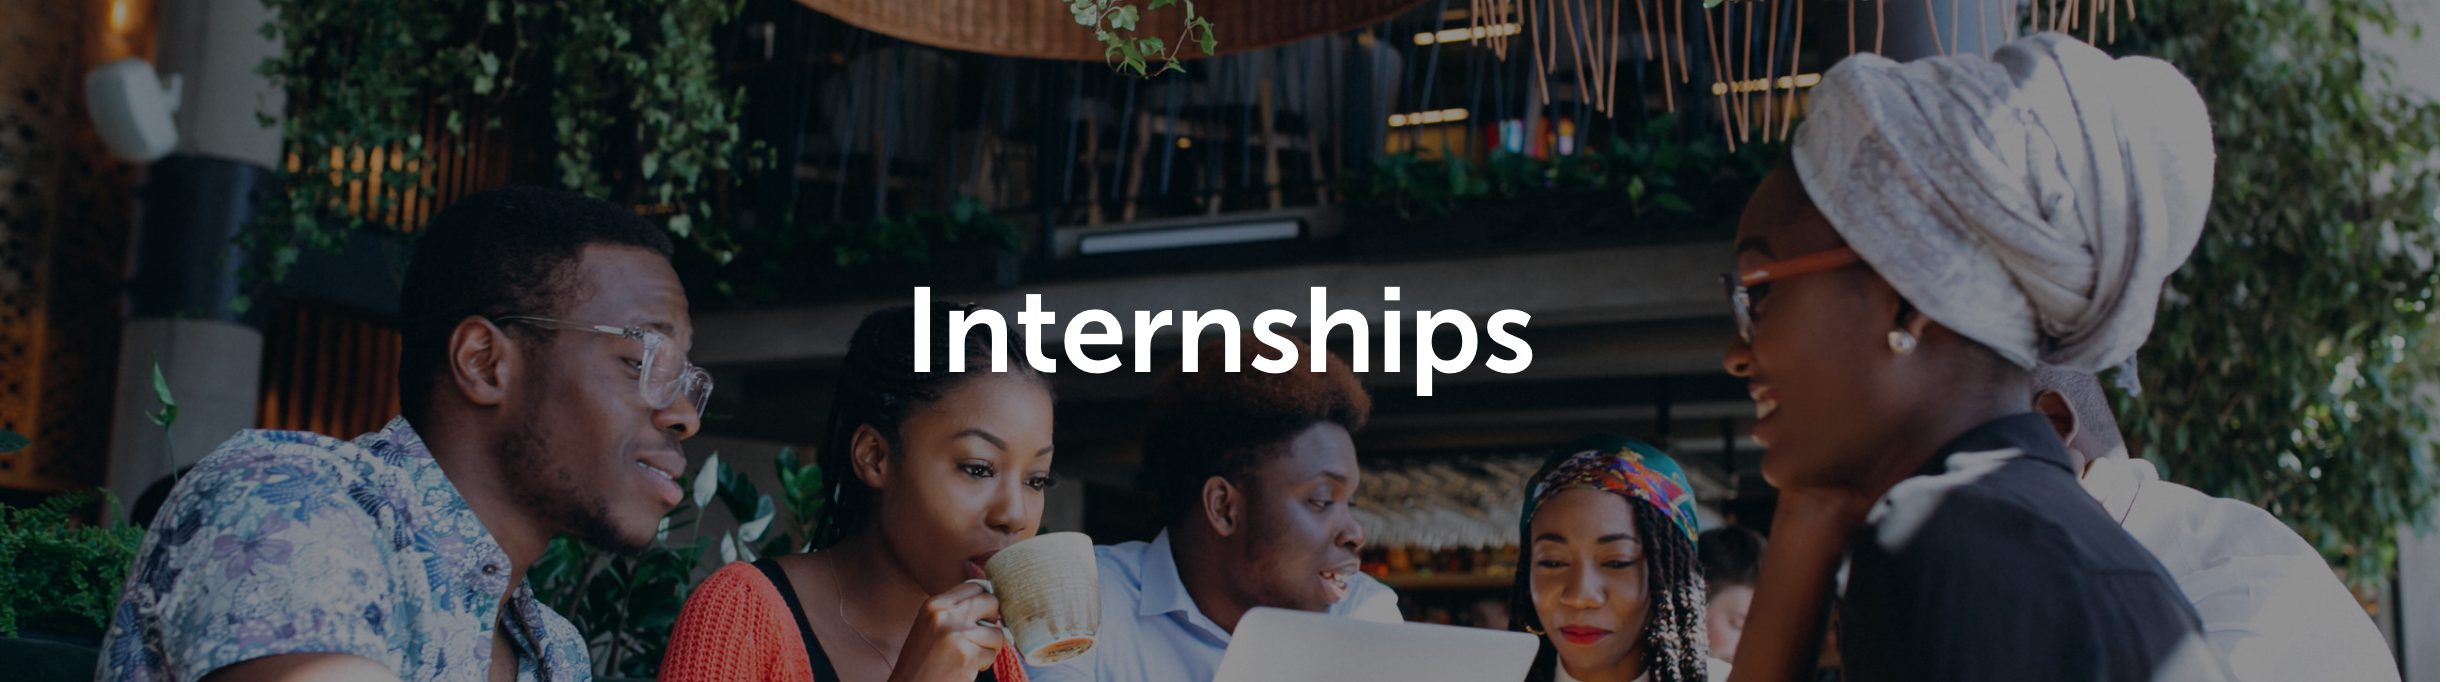 Sterling Bank Summer Associate Internship Program